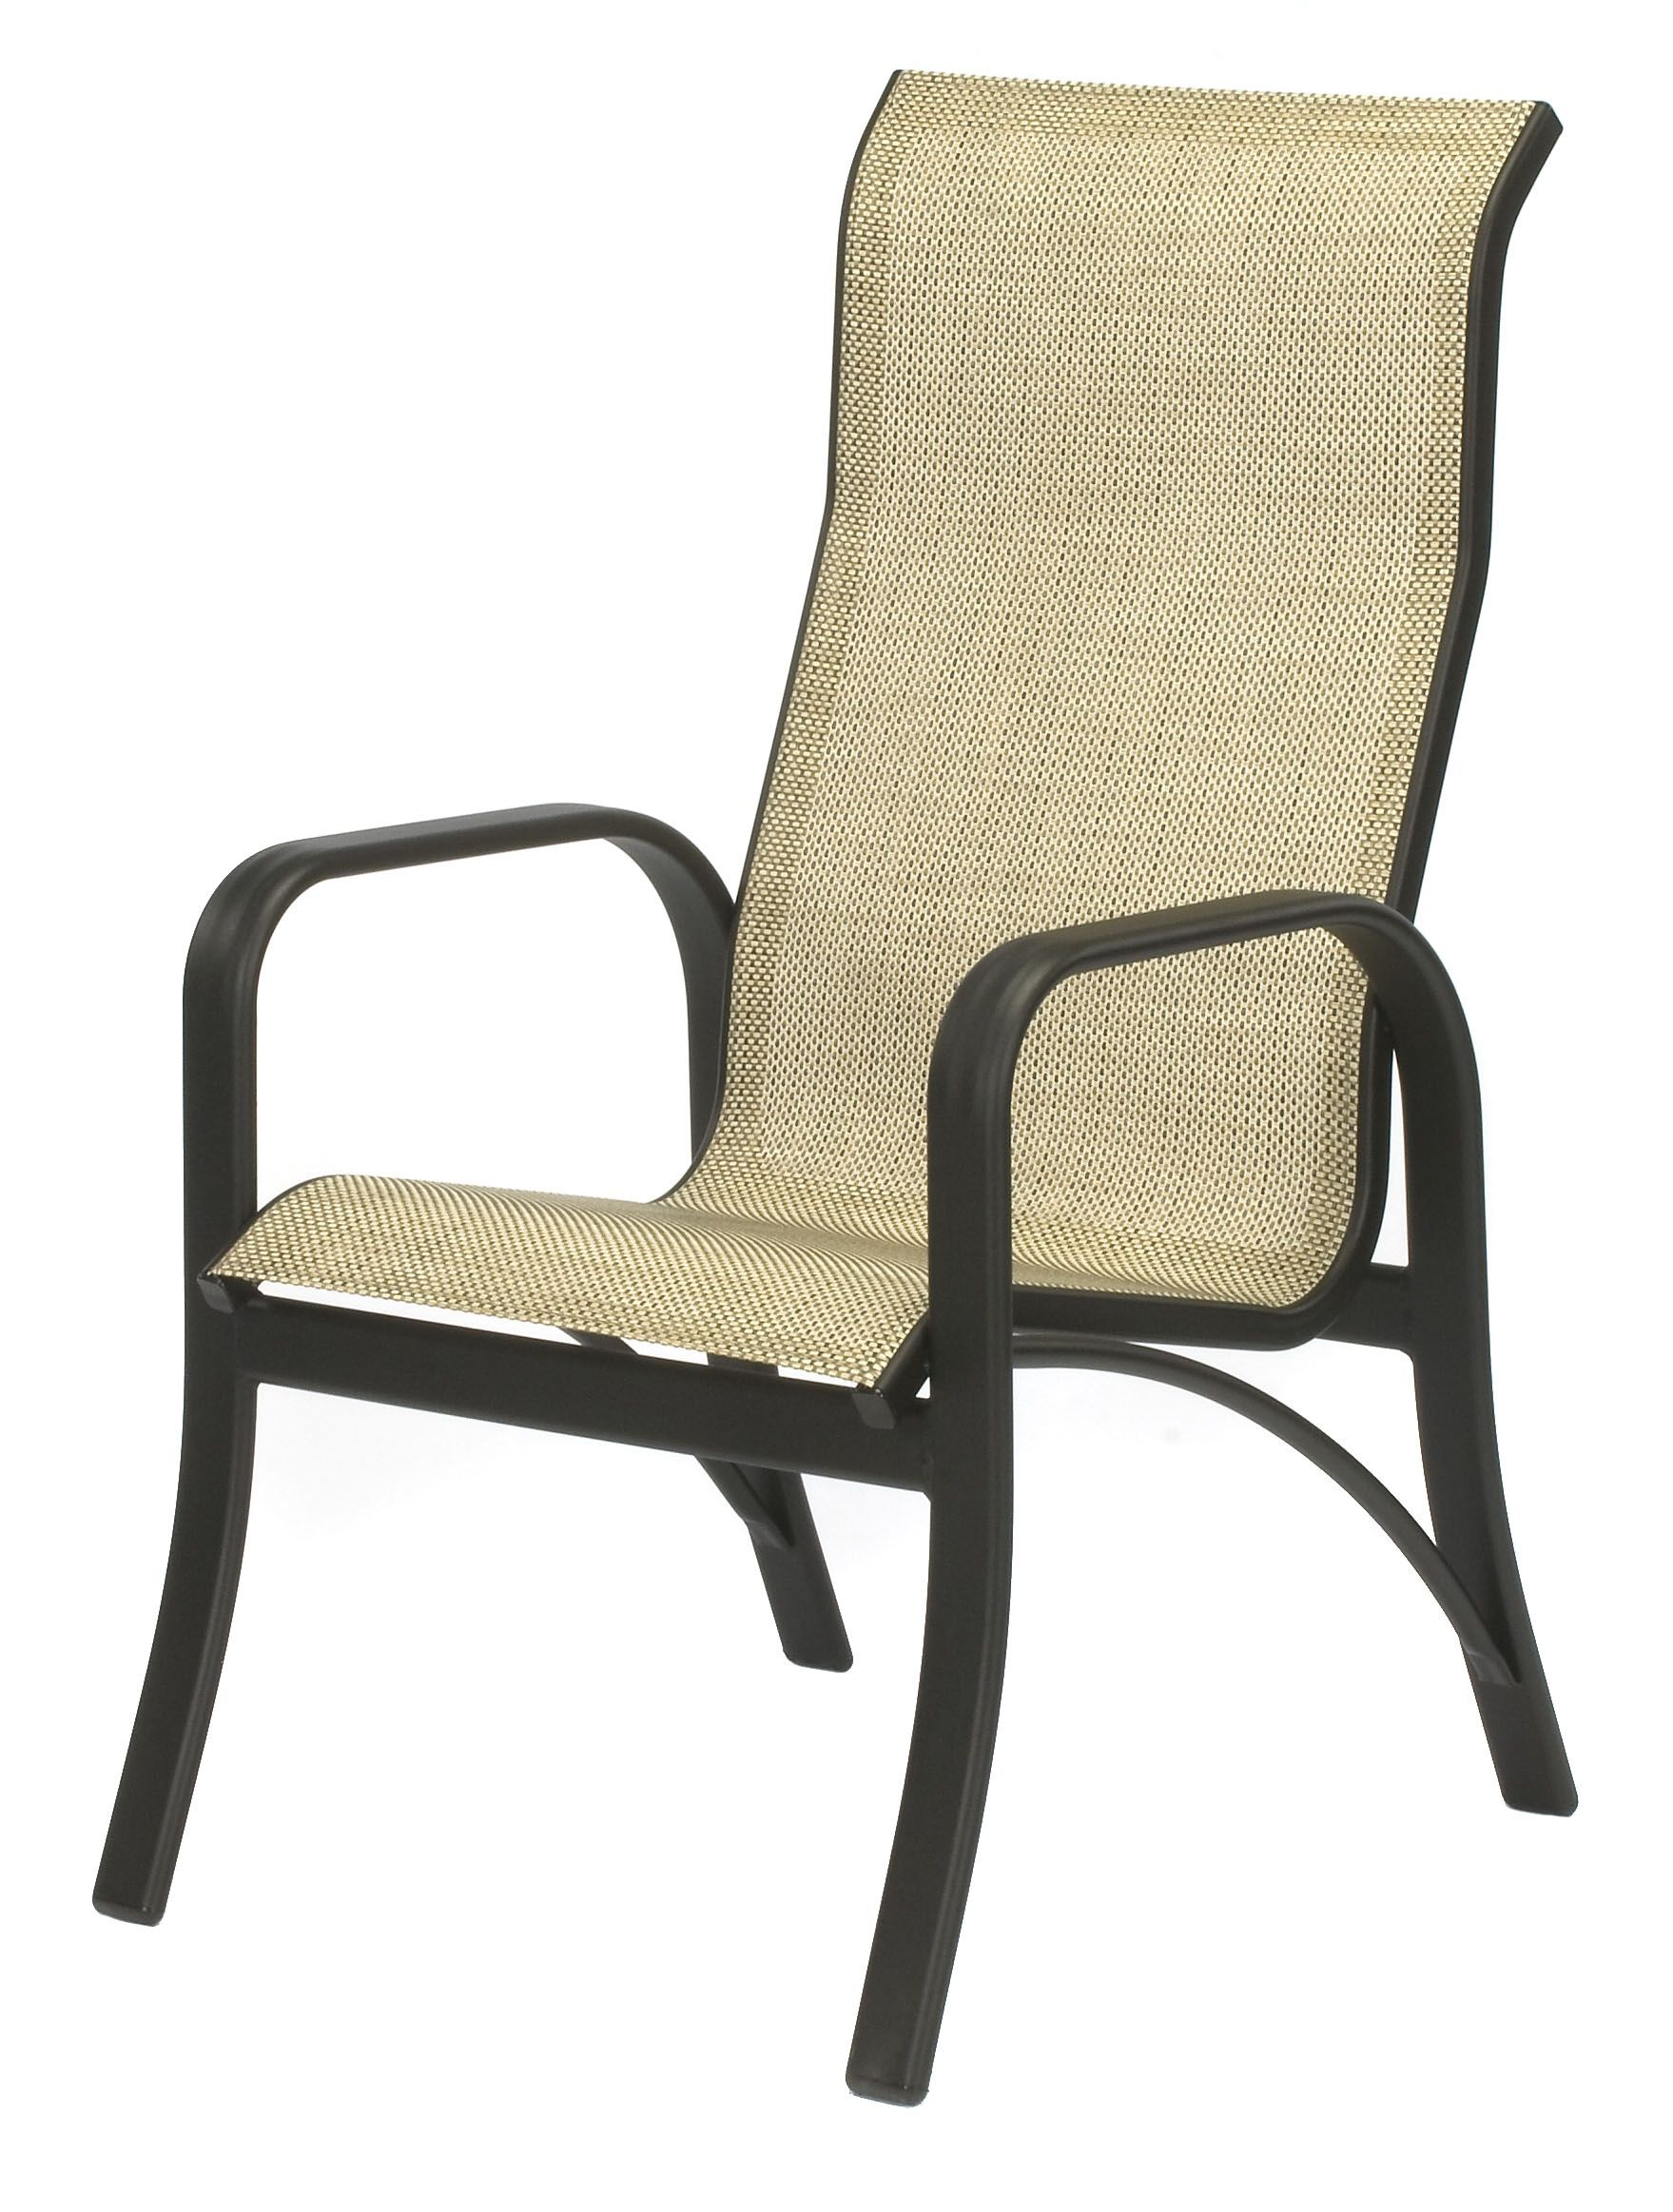 Patio Furniture Sling Back Chairs